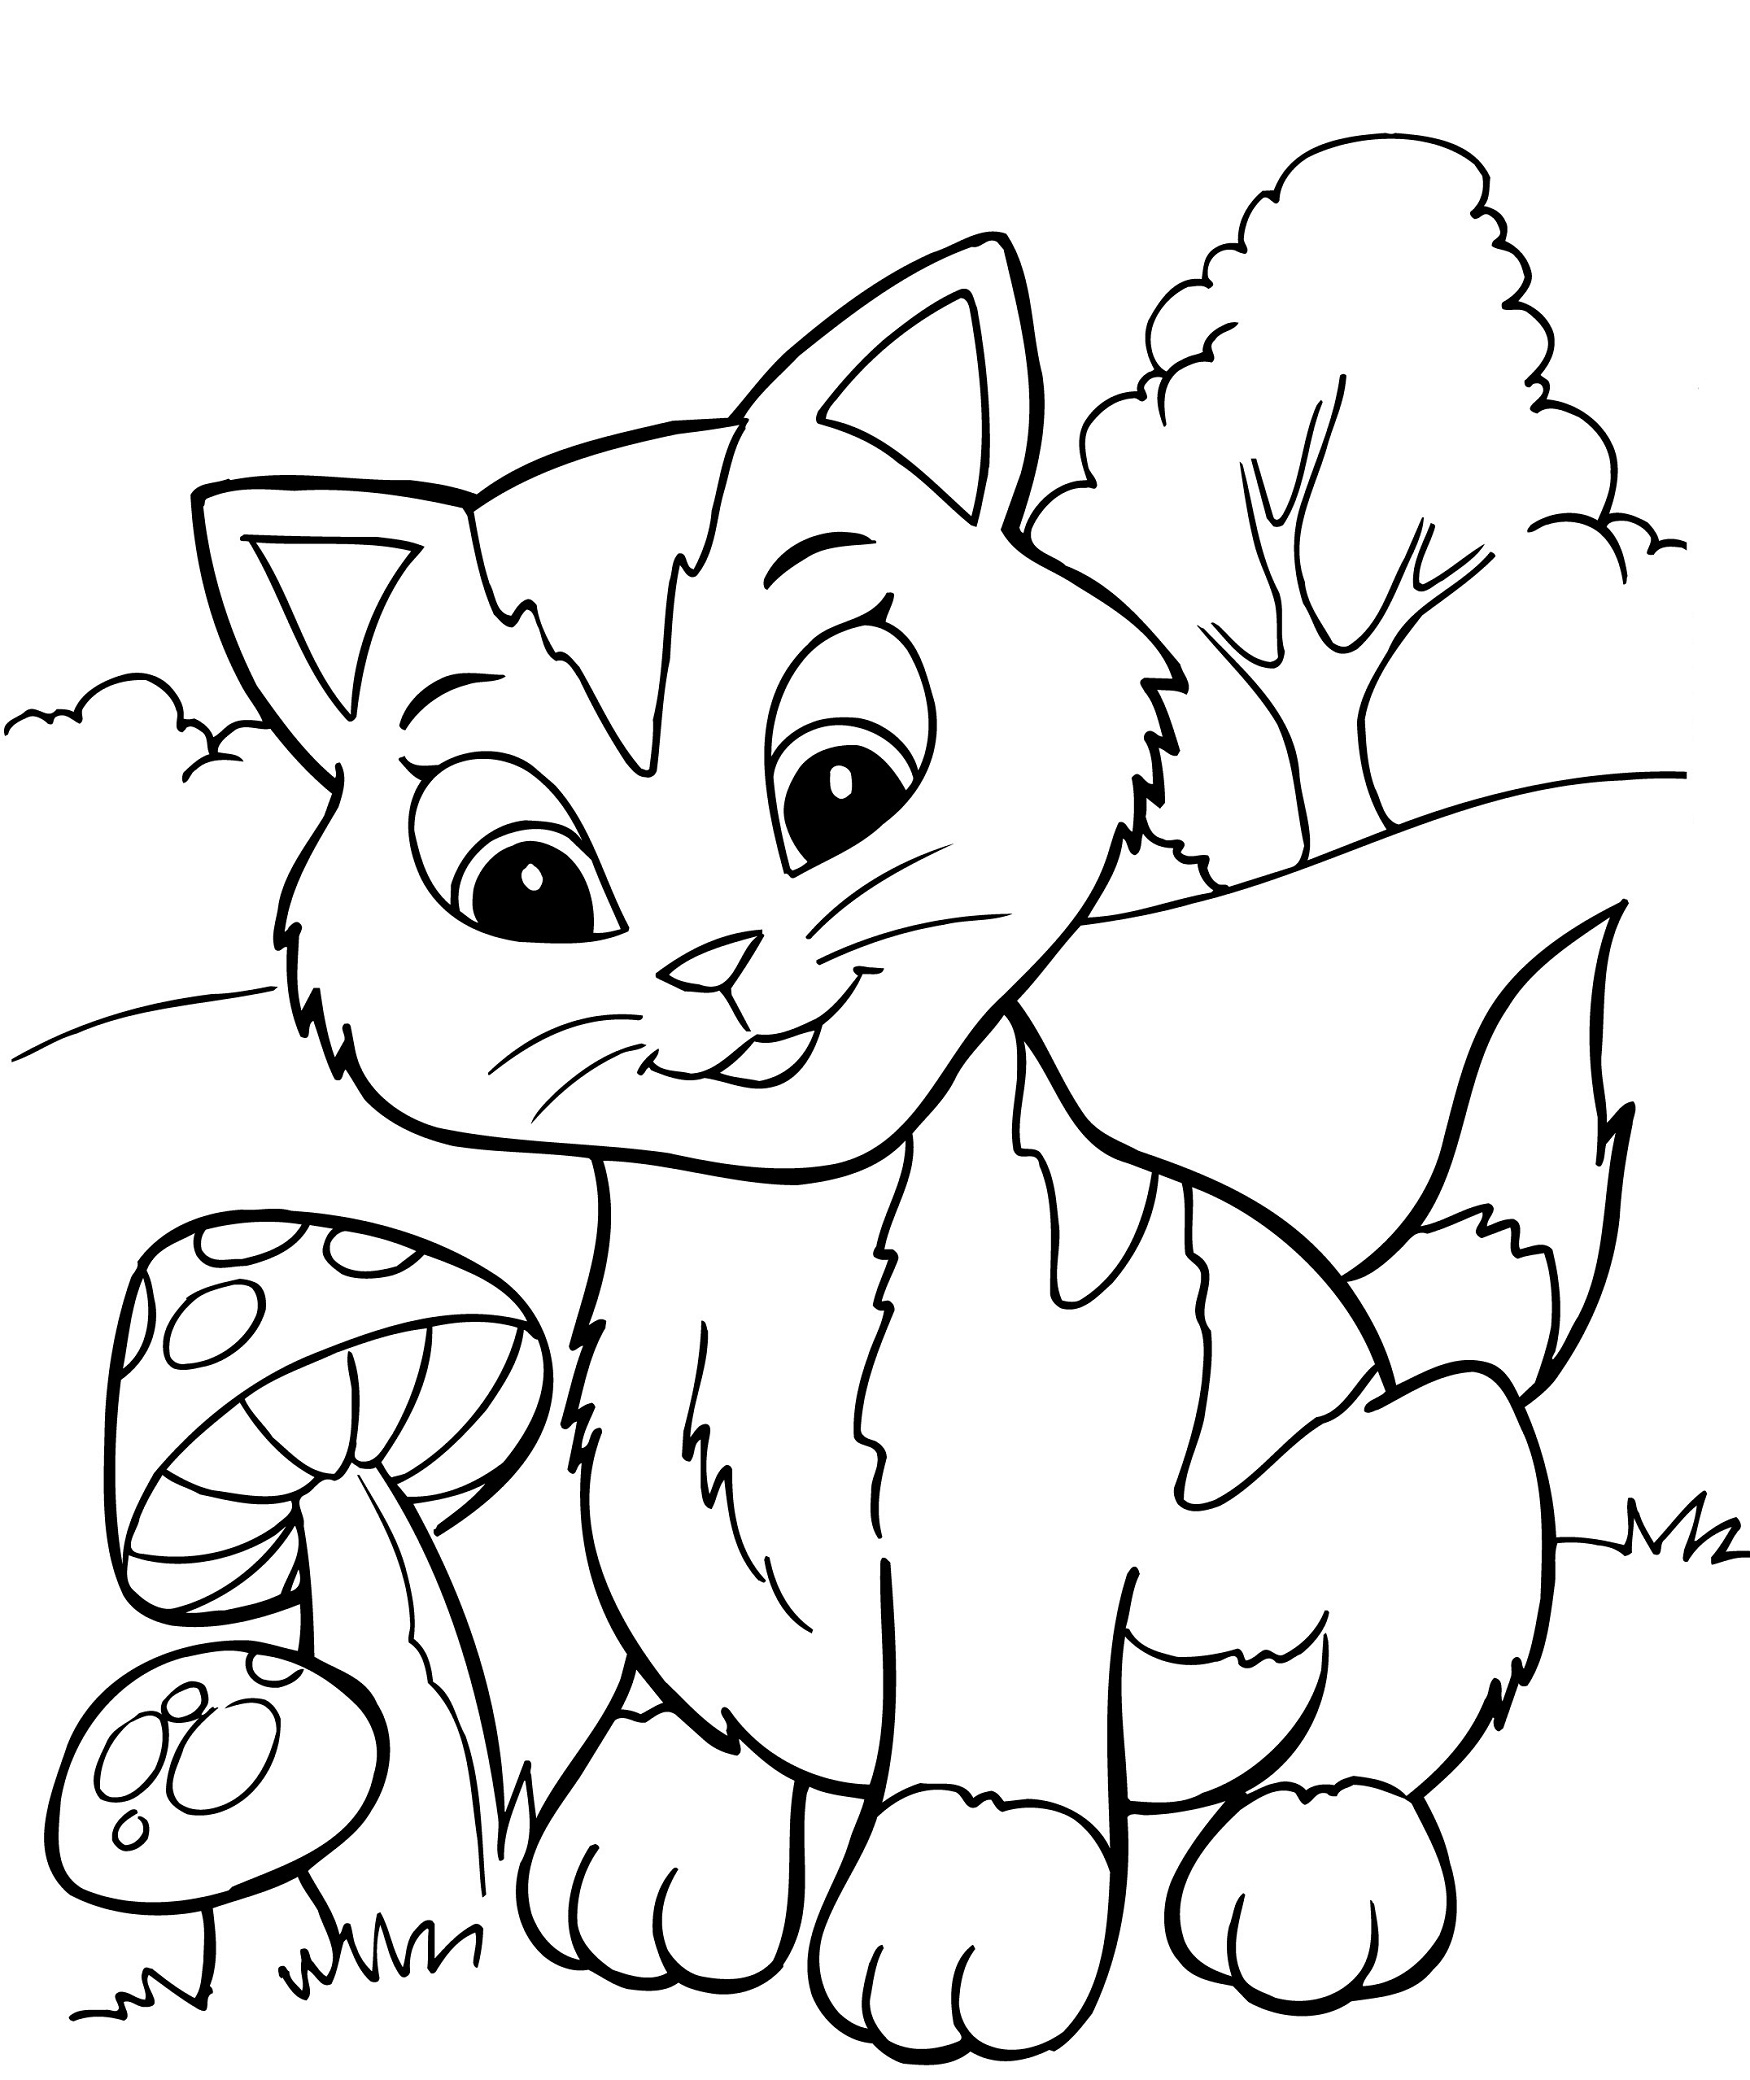 colouring pages cats free printable kitten coloring pages for kids best cats pages colouring